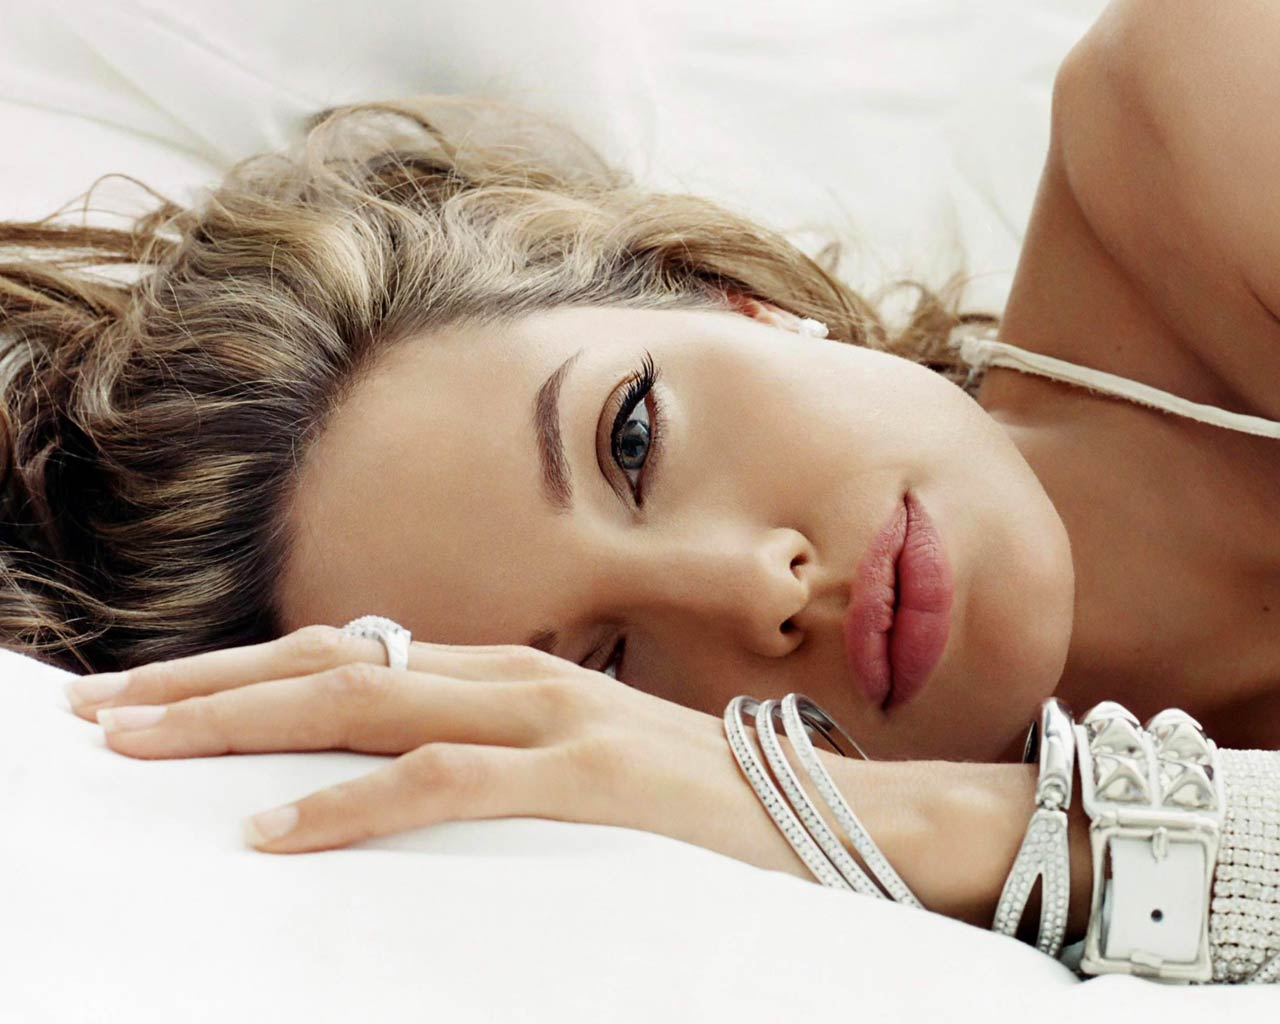 http://3.bp.blogspot.com/-EPFVHiY5TbA/US-JDc1WEKI/AAAAAAAABJQ/EXJ9VRPilso/s1600/angelina-jolie-in-bed-laying-down-wallpaper.jpg